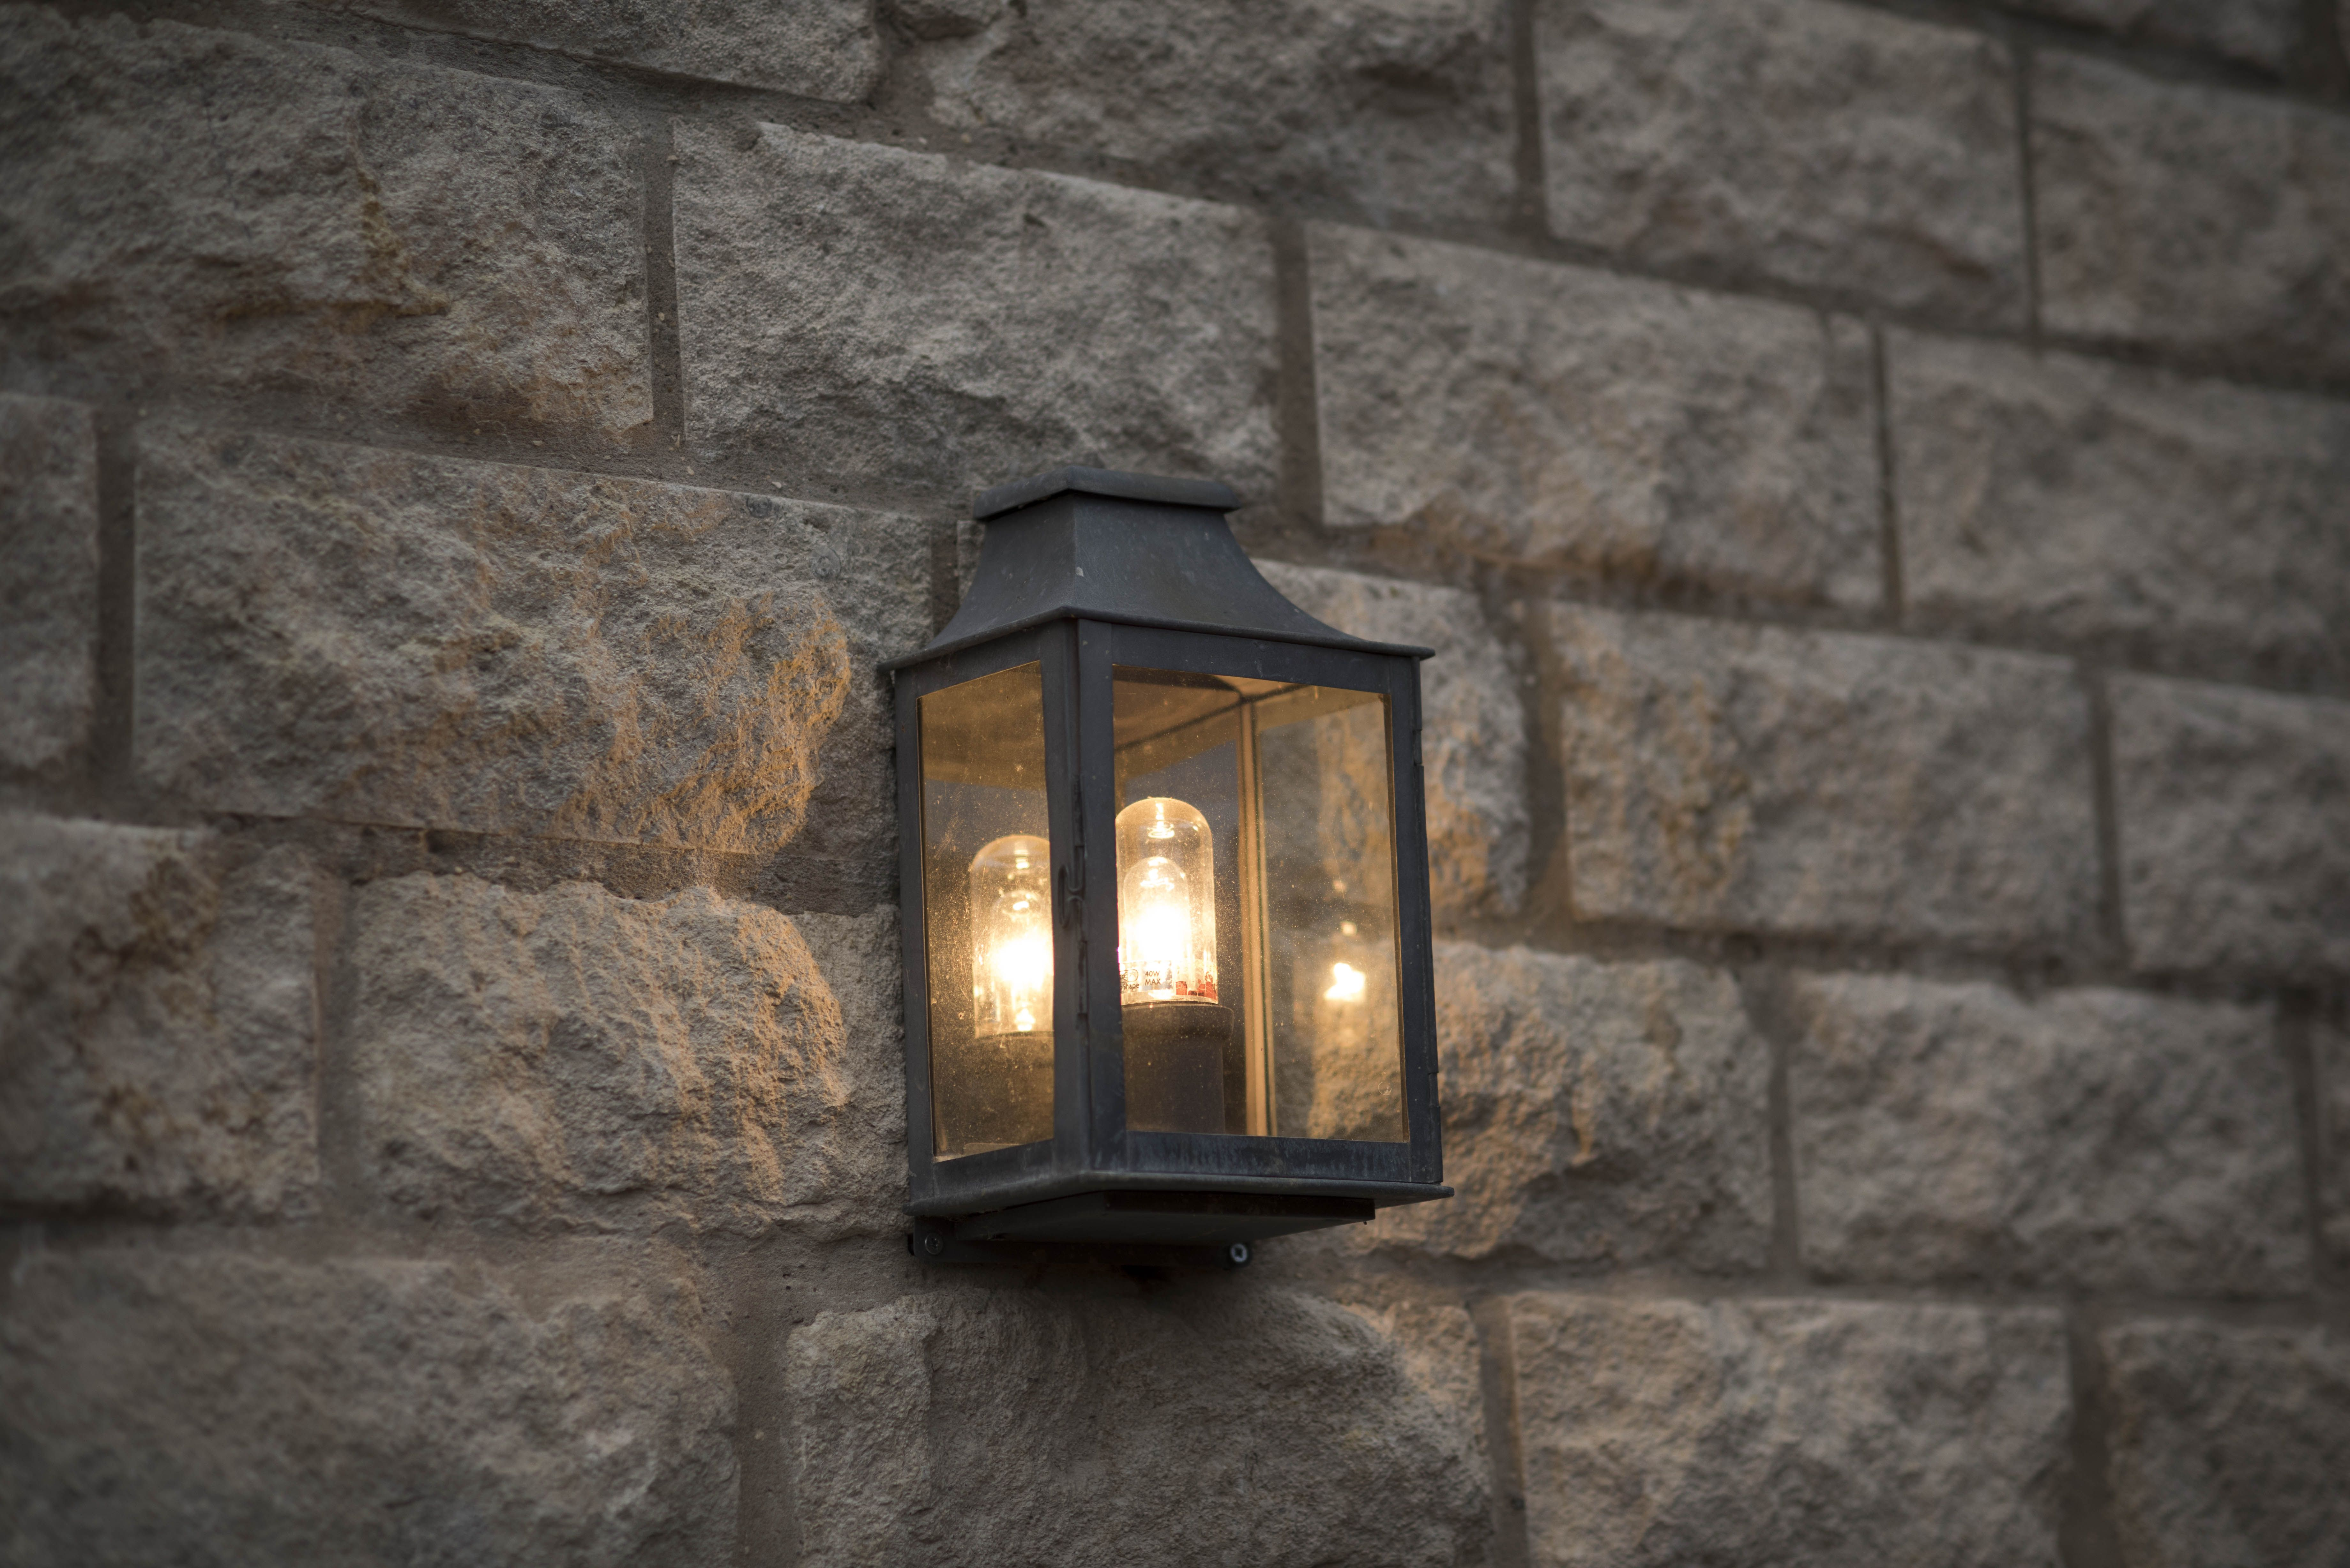 Lighting Exterior Wall Mounted Lantern Light Outside Entrance Door Of Country Cottage